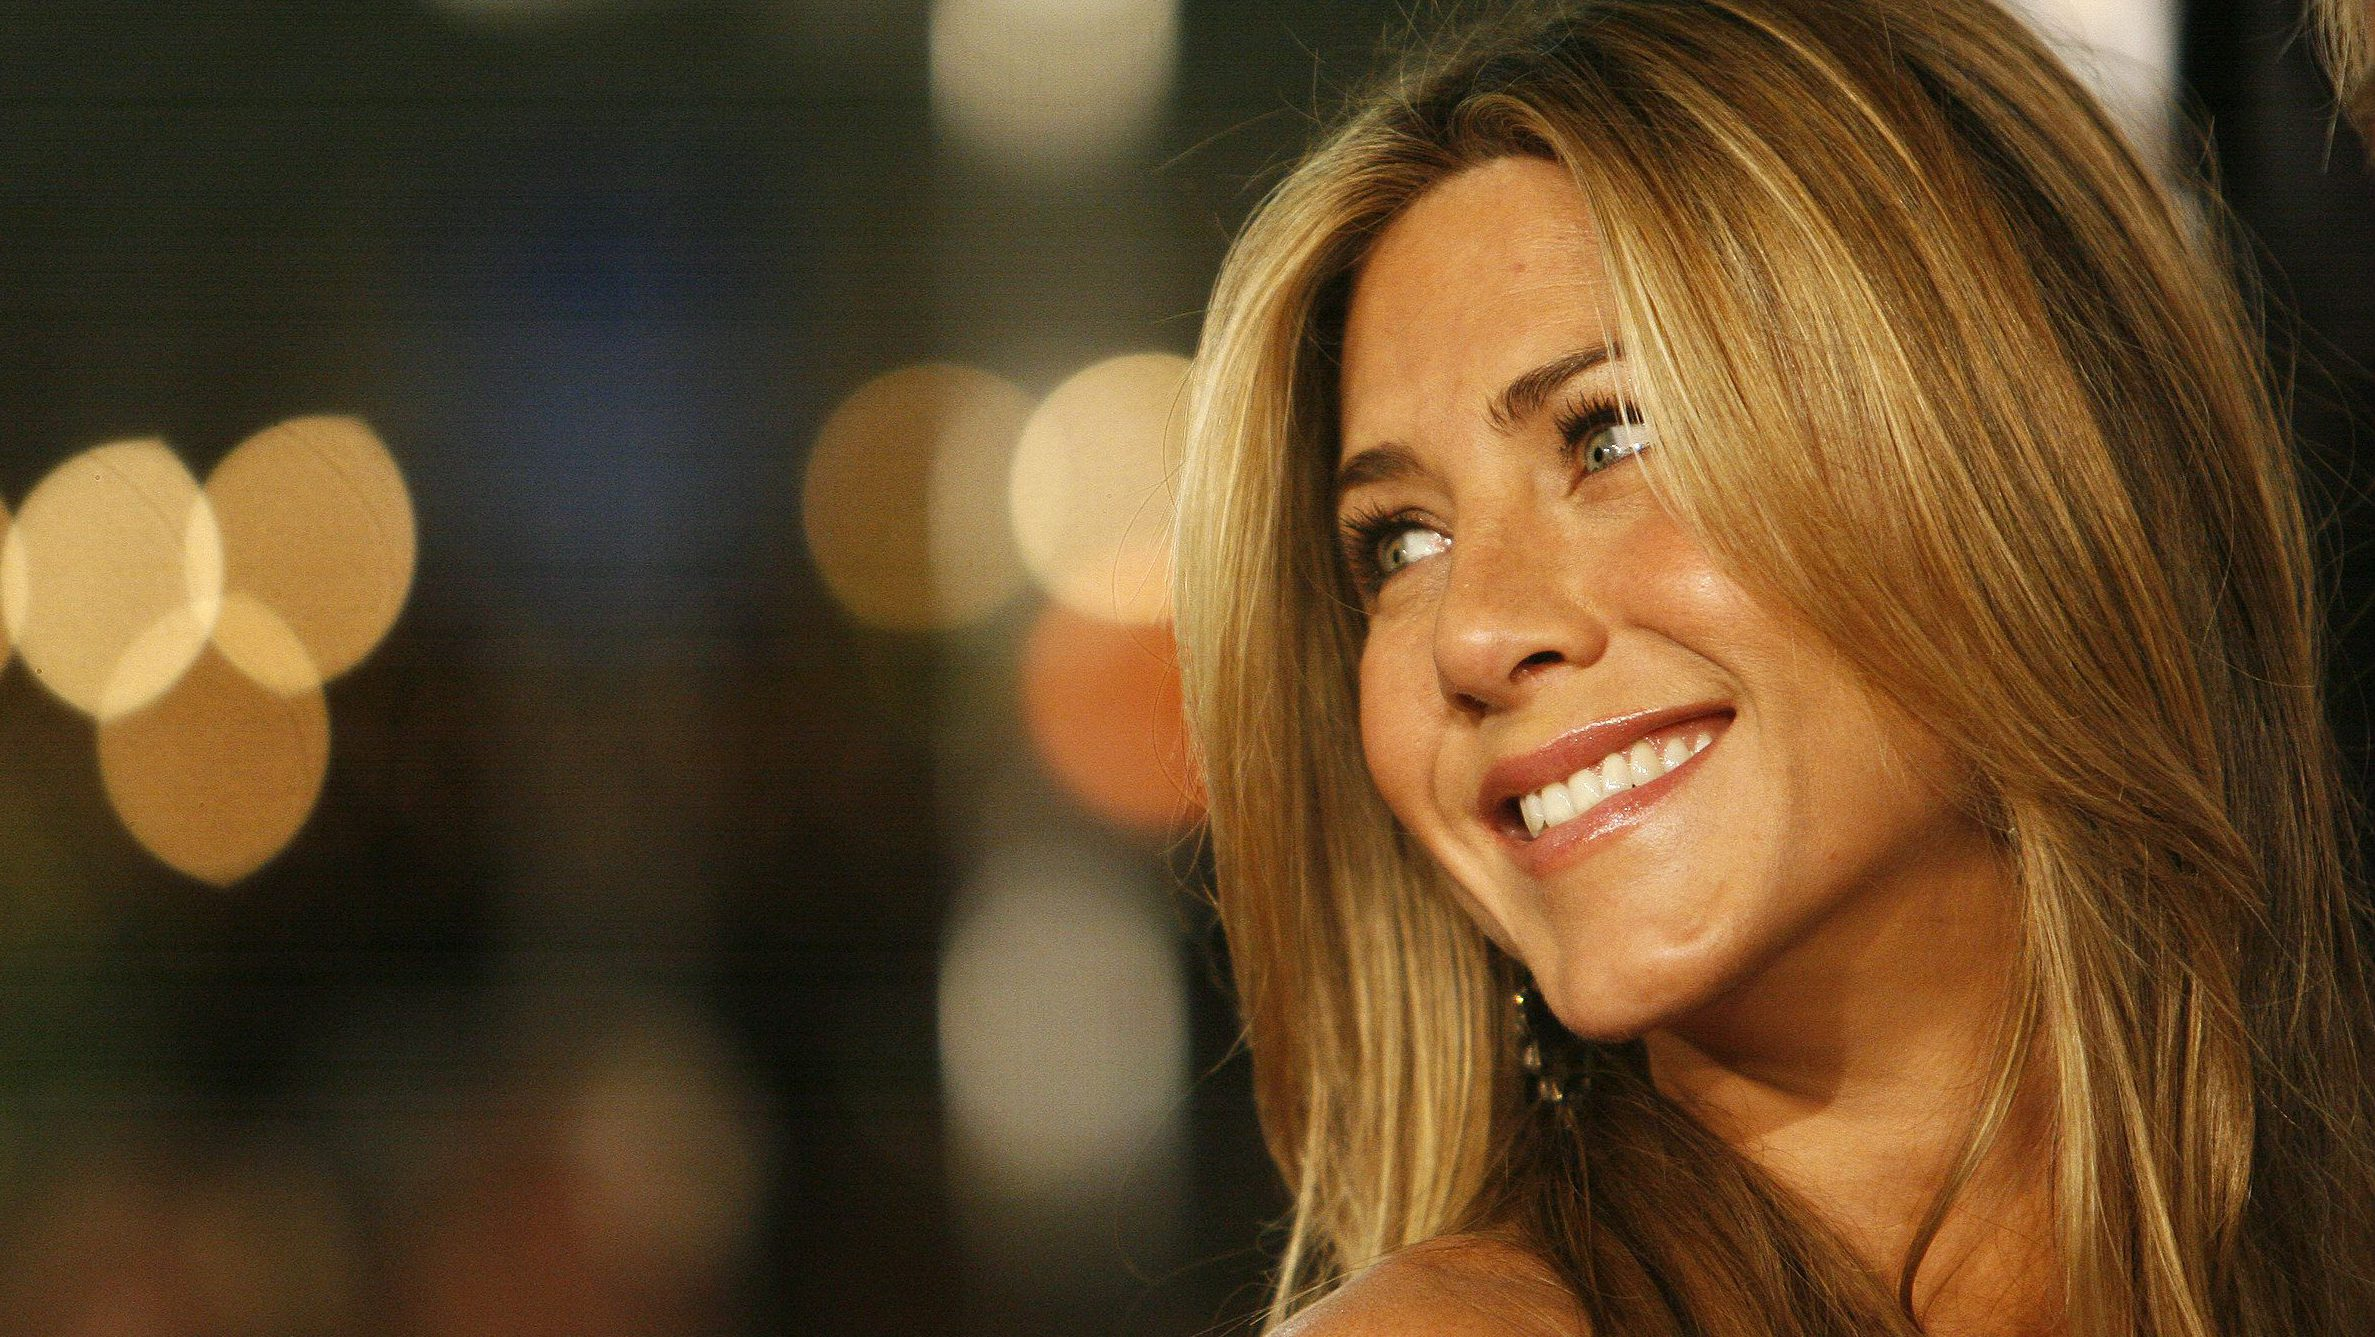 ThrowbackThursday: See A 24-Year-Old Jennifer Aniston in Her First FilmRole recommendations